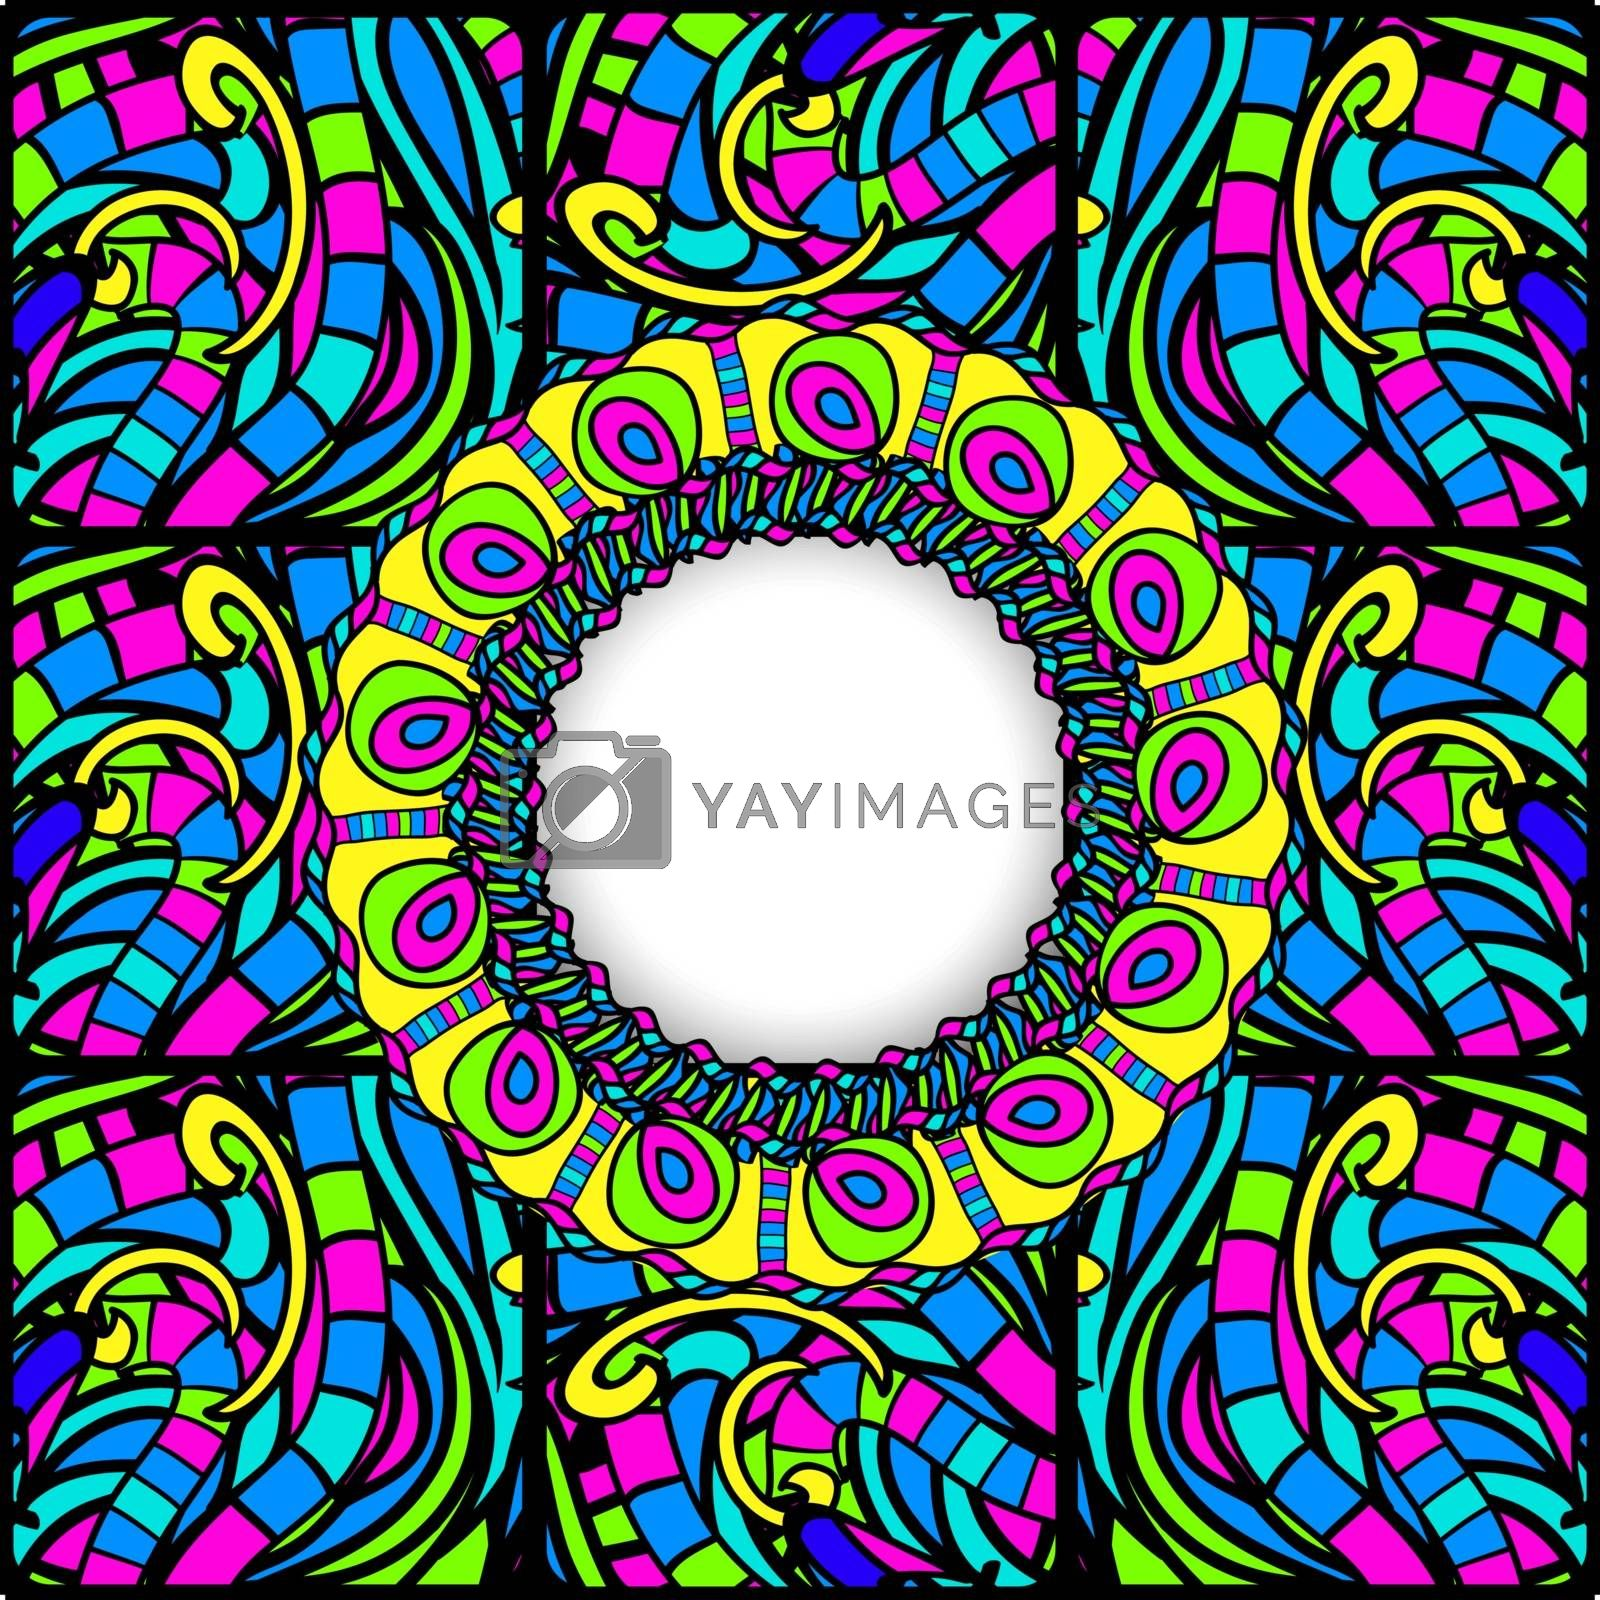 Multicolored Stained-Glass Abstract Round Frame, Copyspace